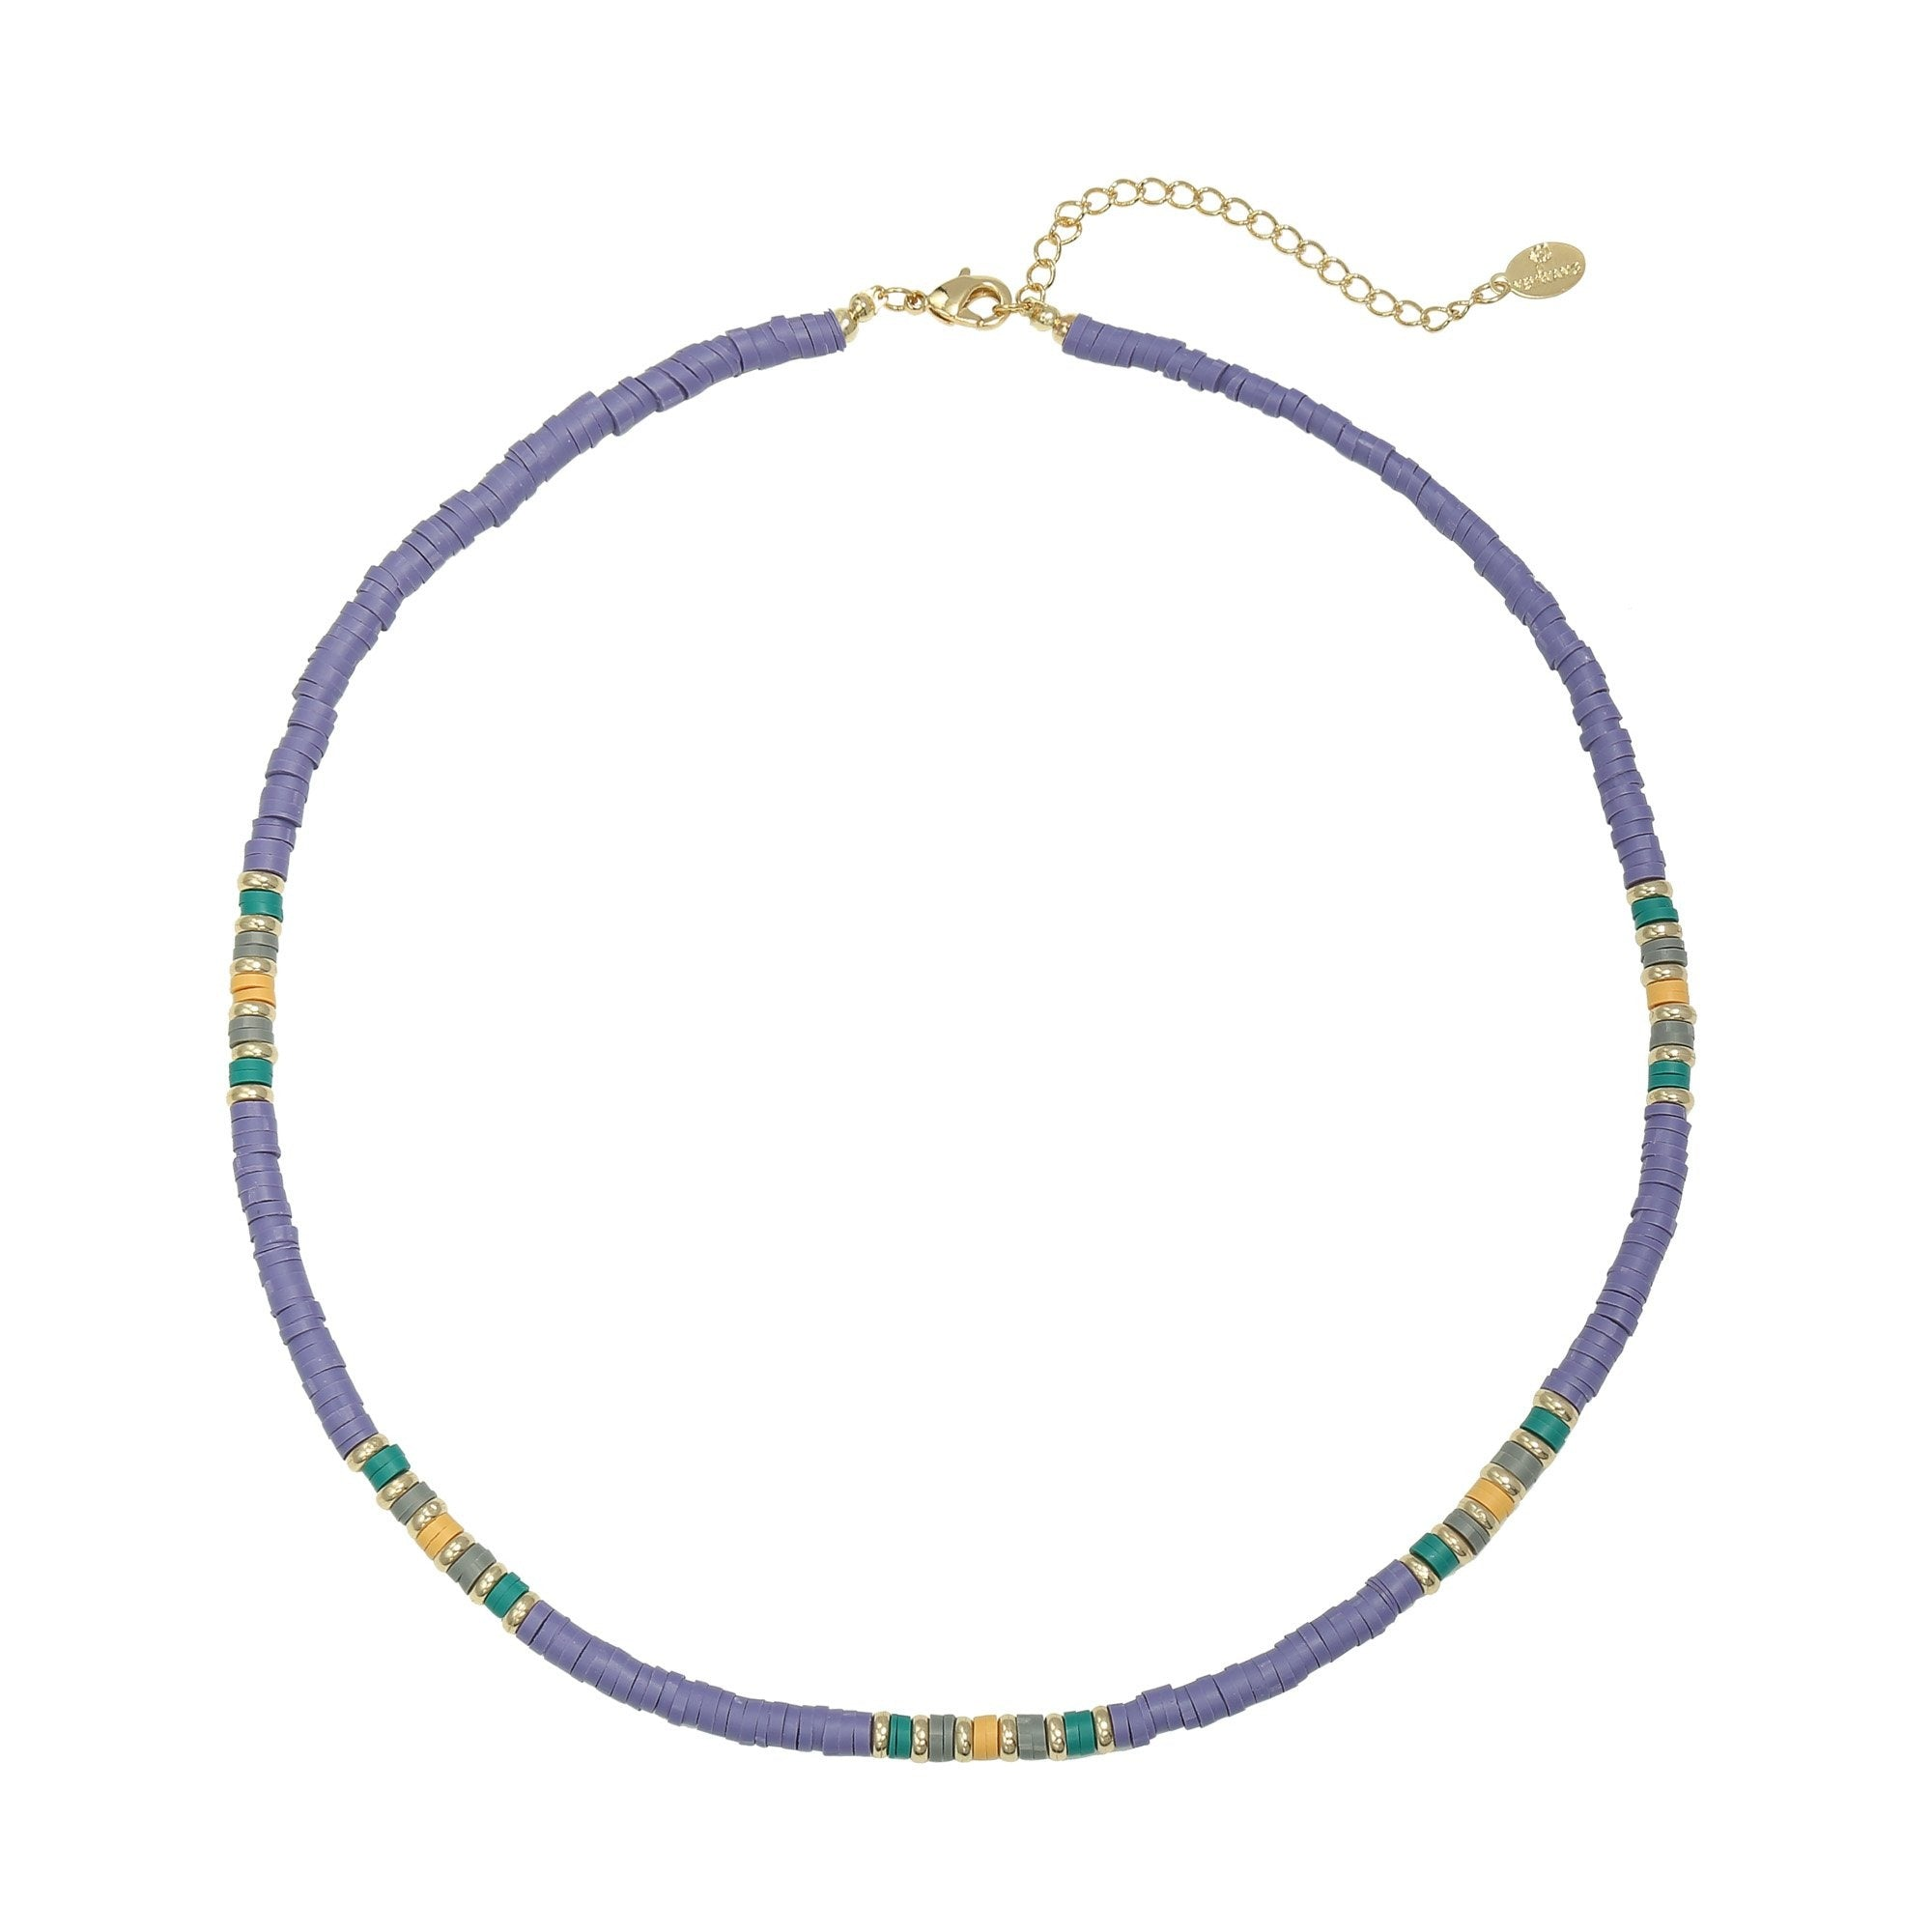 Classy Sassy Colourful Choker Necklace